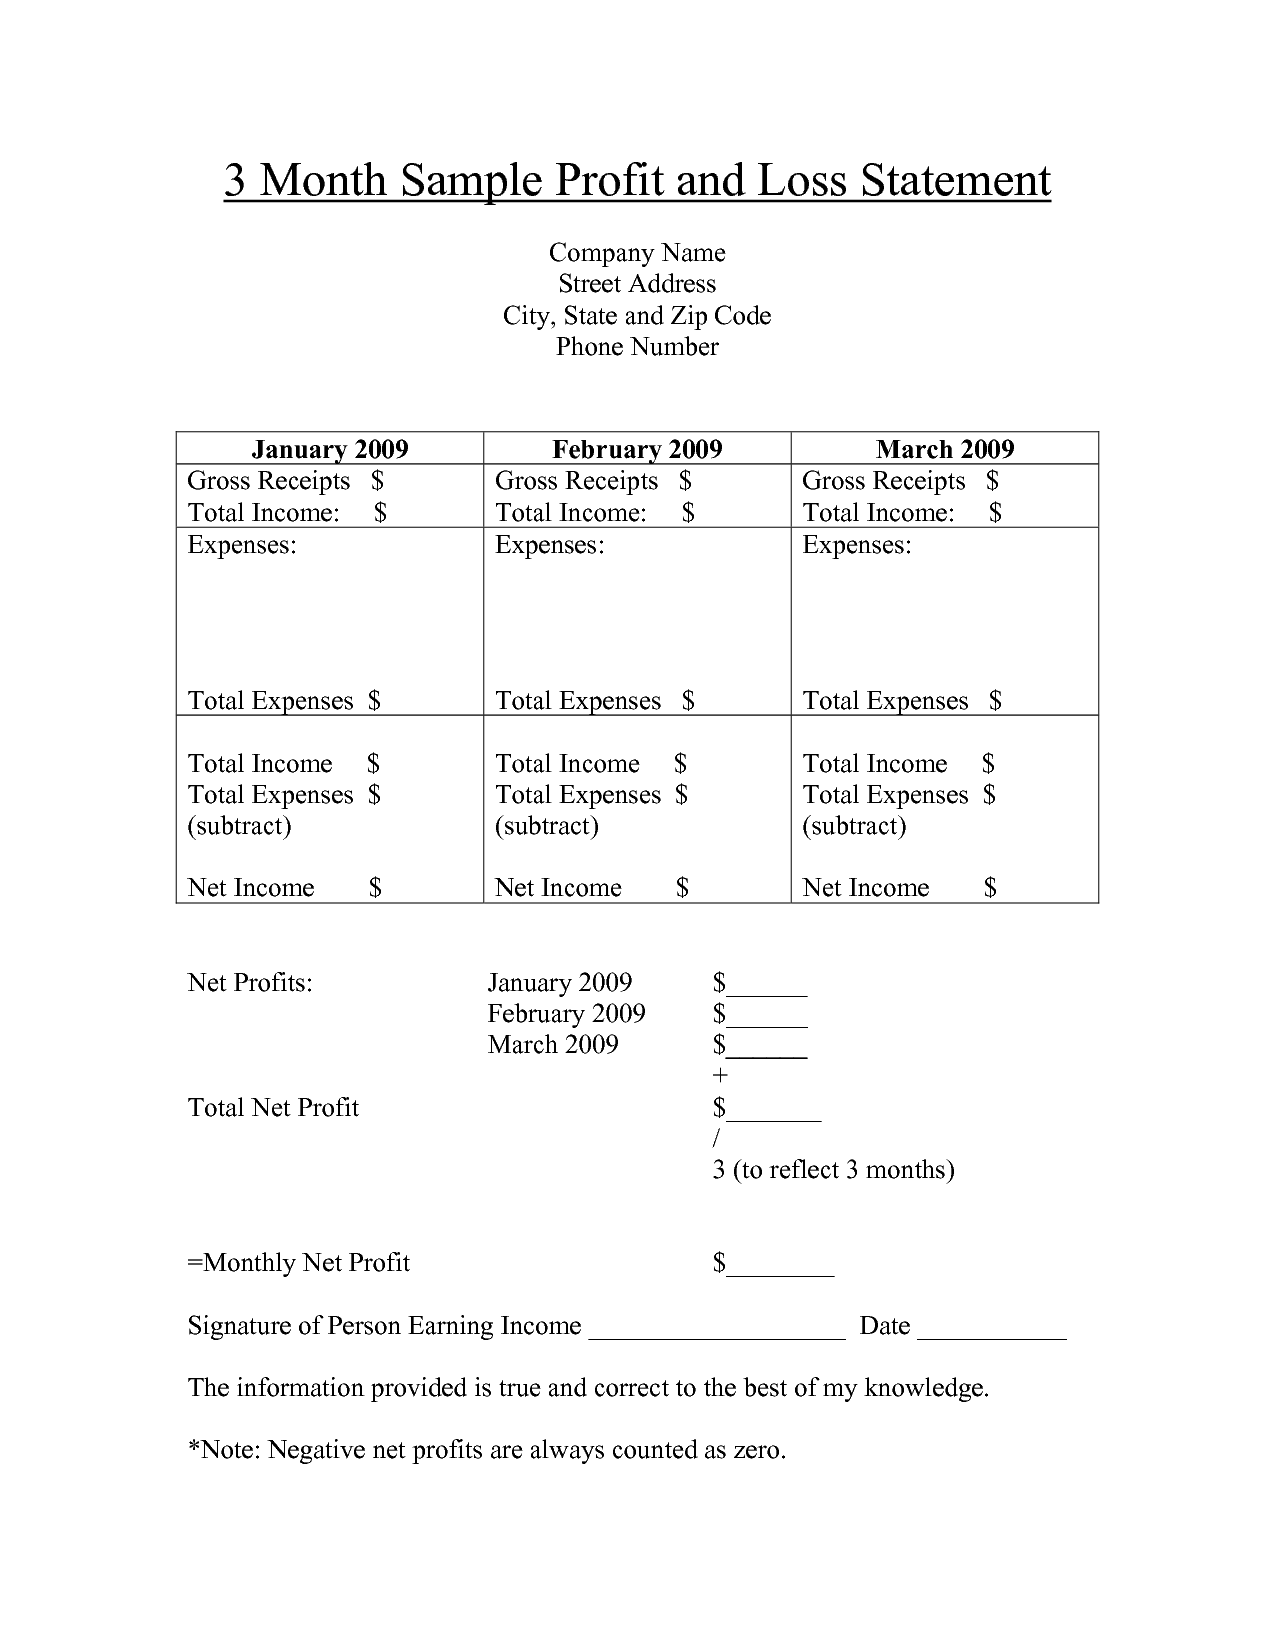 Profit And Loss Template Free Profit And Loss Statement Form Printable  Month Sample Profit And .